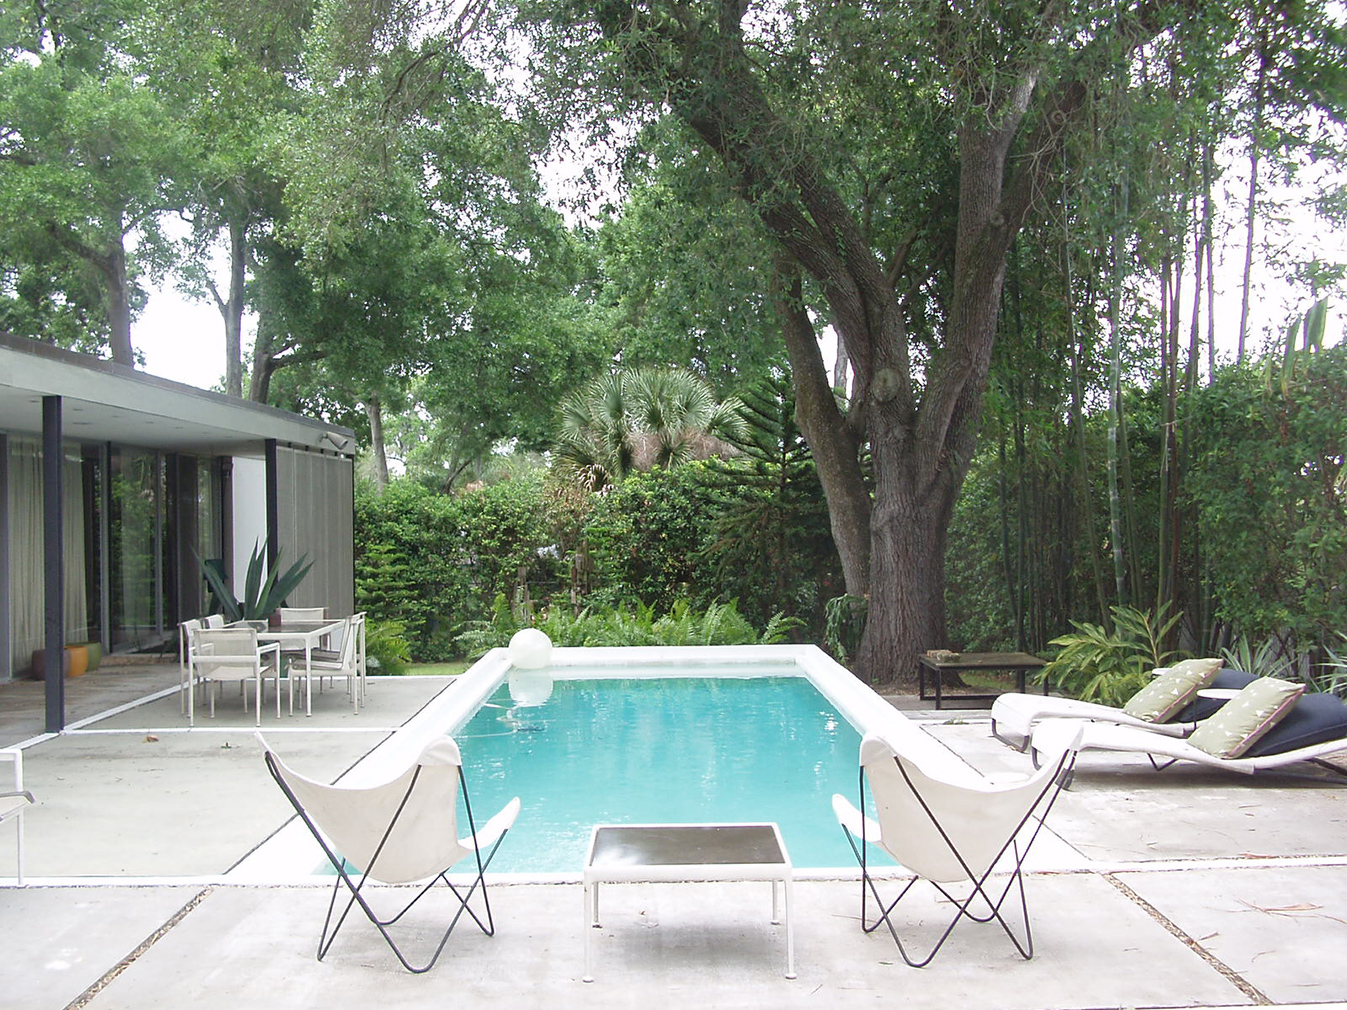 Weaving House - holiday home for rent in Florida